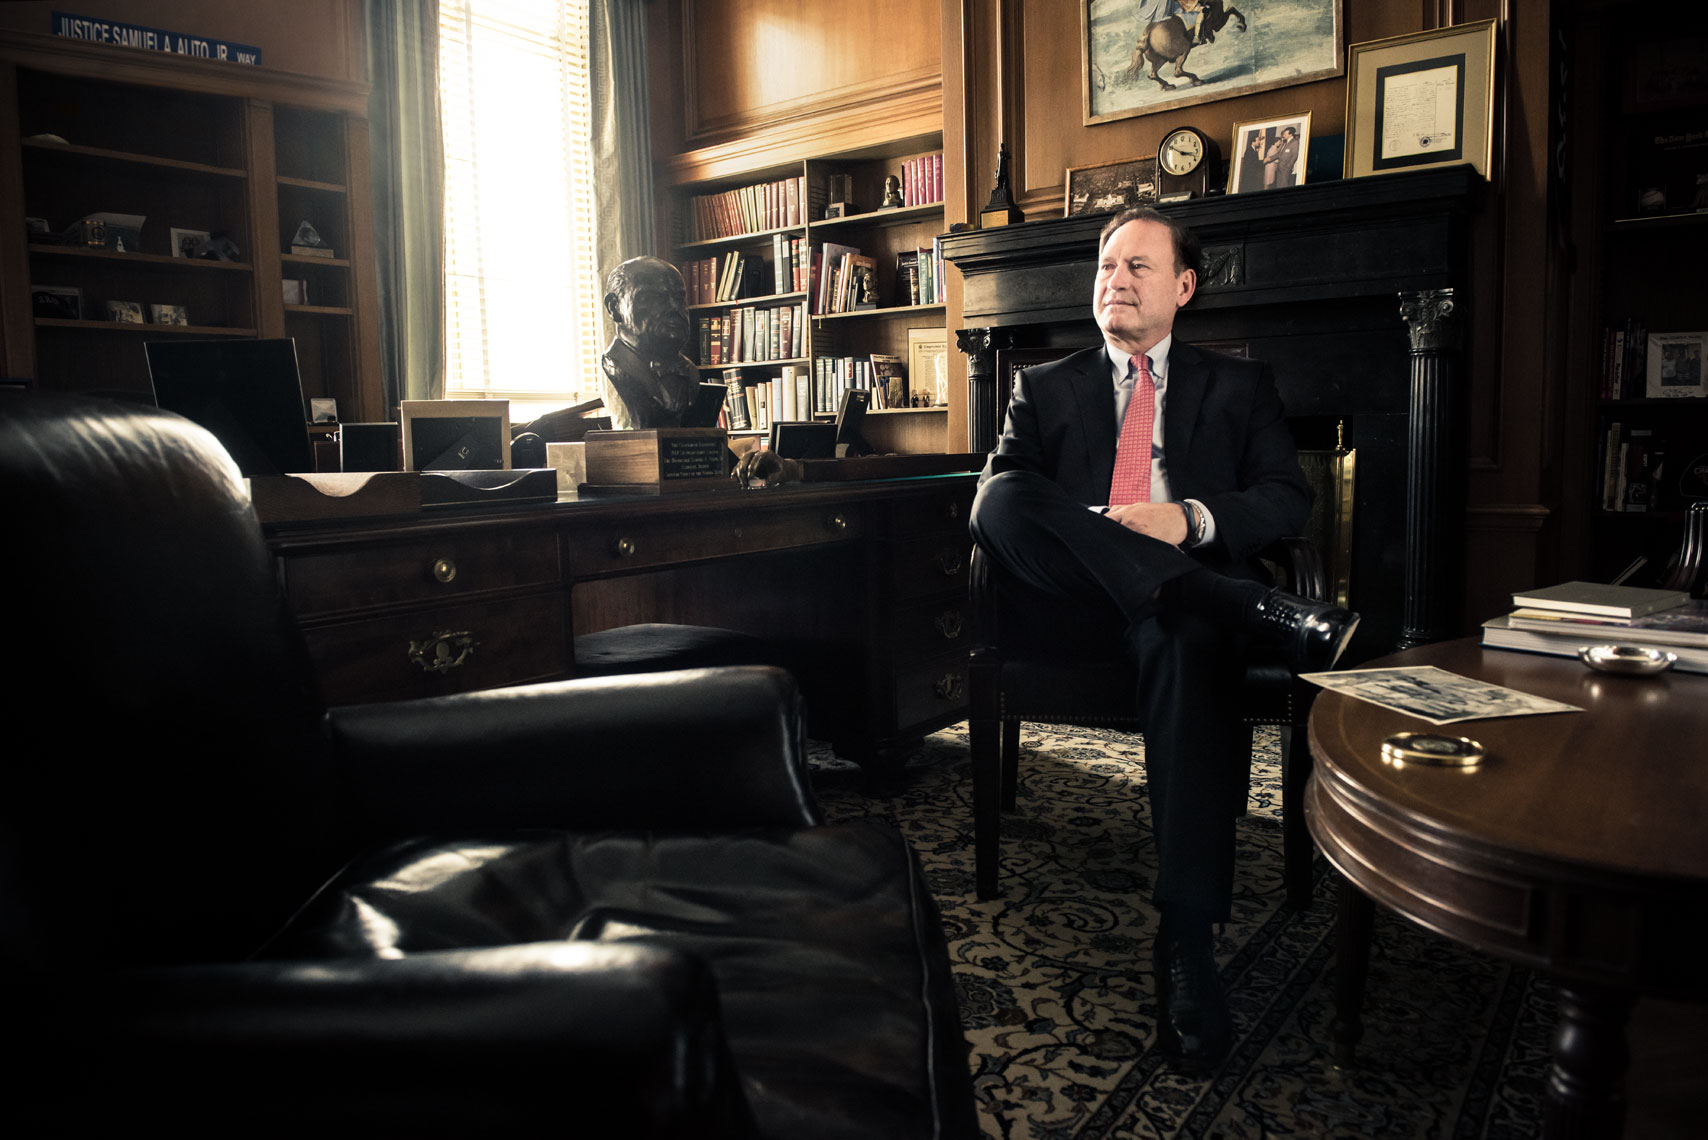 Supreme Court Justice Samuel Alito, by Washington DC photographer Mike Morgan